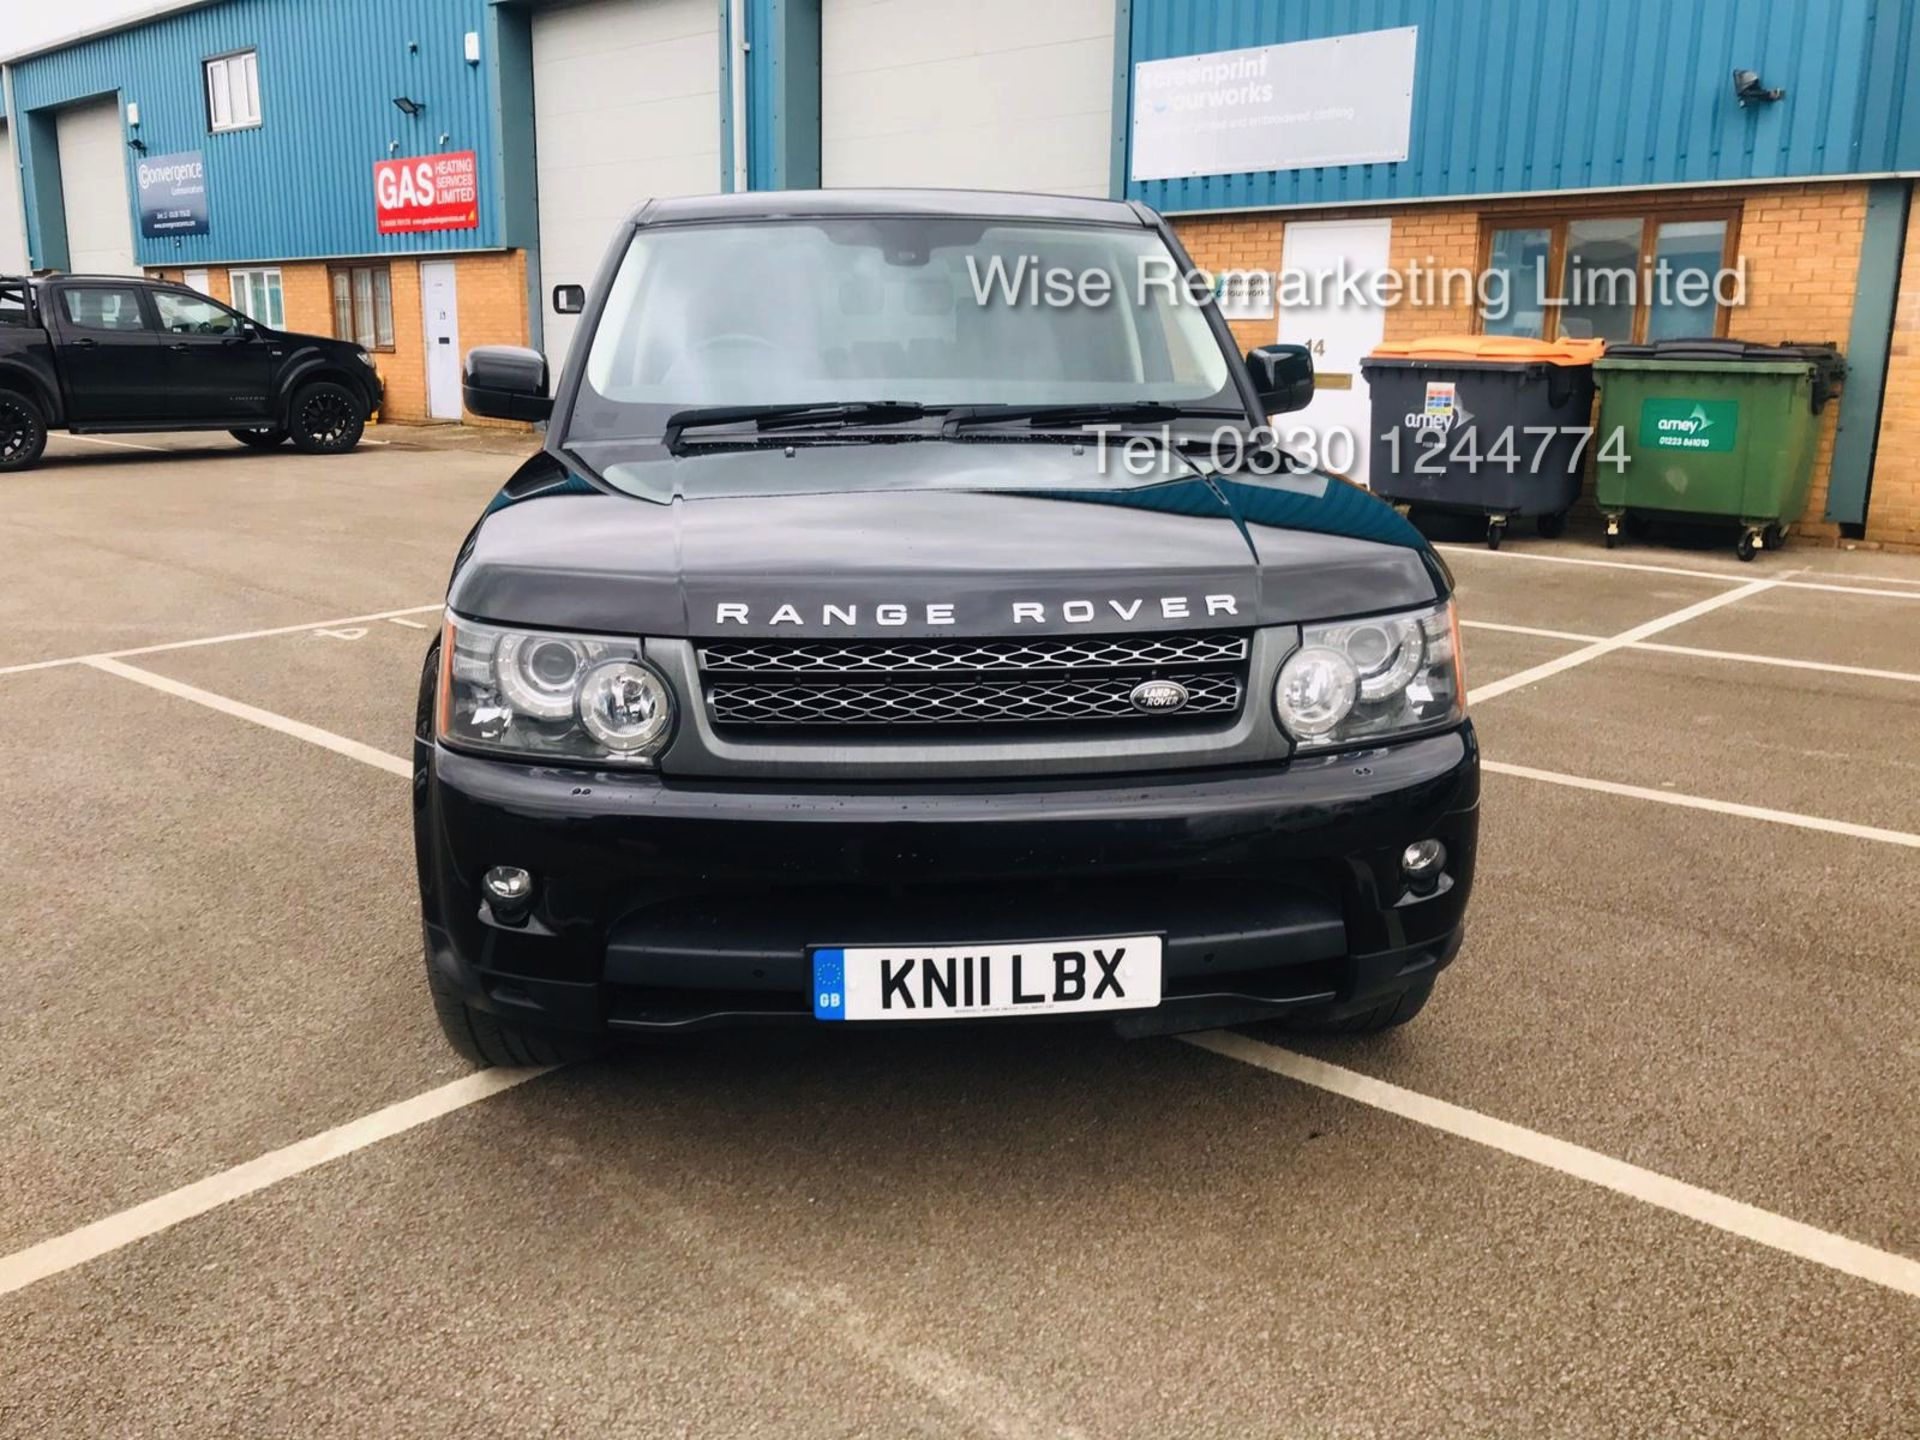 Range Rover Sport SE 3.0 TDV6 Automatic - 2011 11 Reg - 1 Keeper From New - Service History - Image 2 of 21